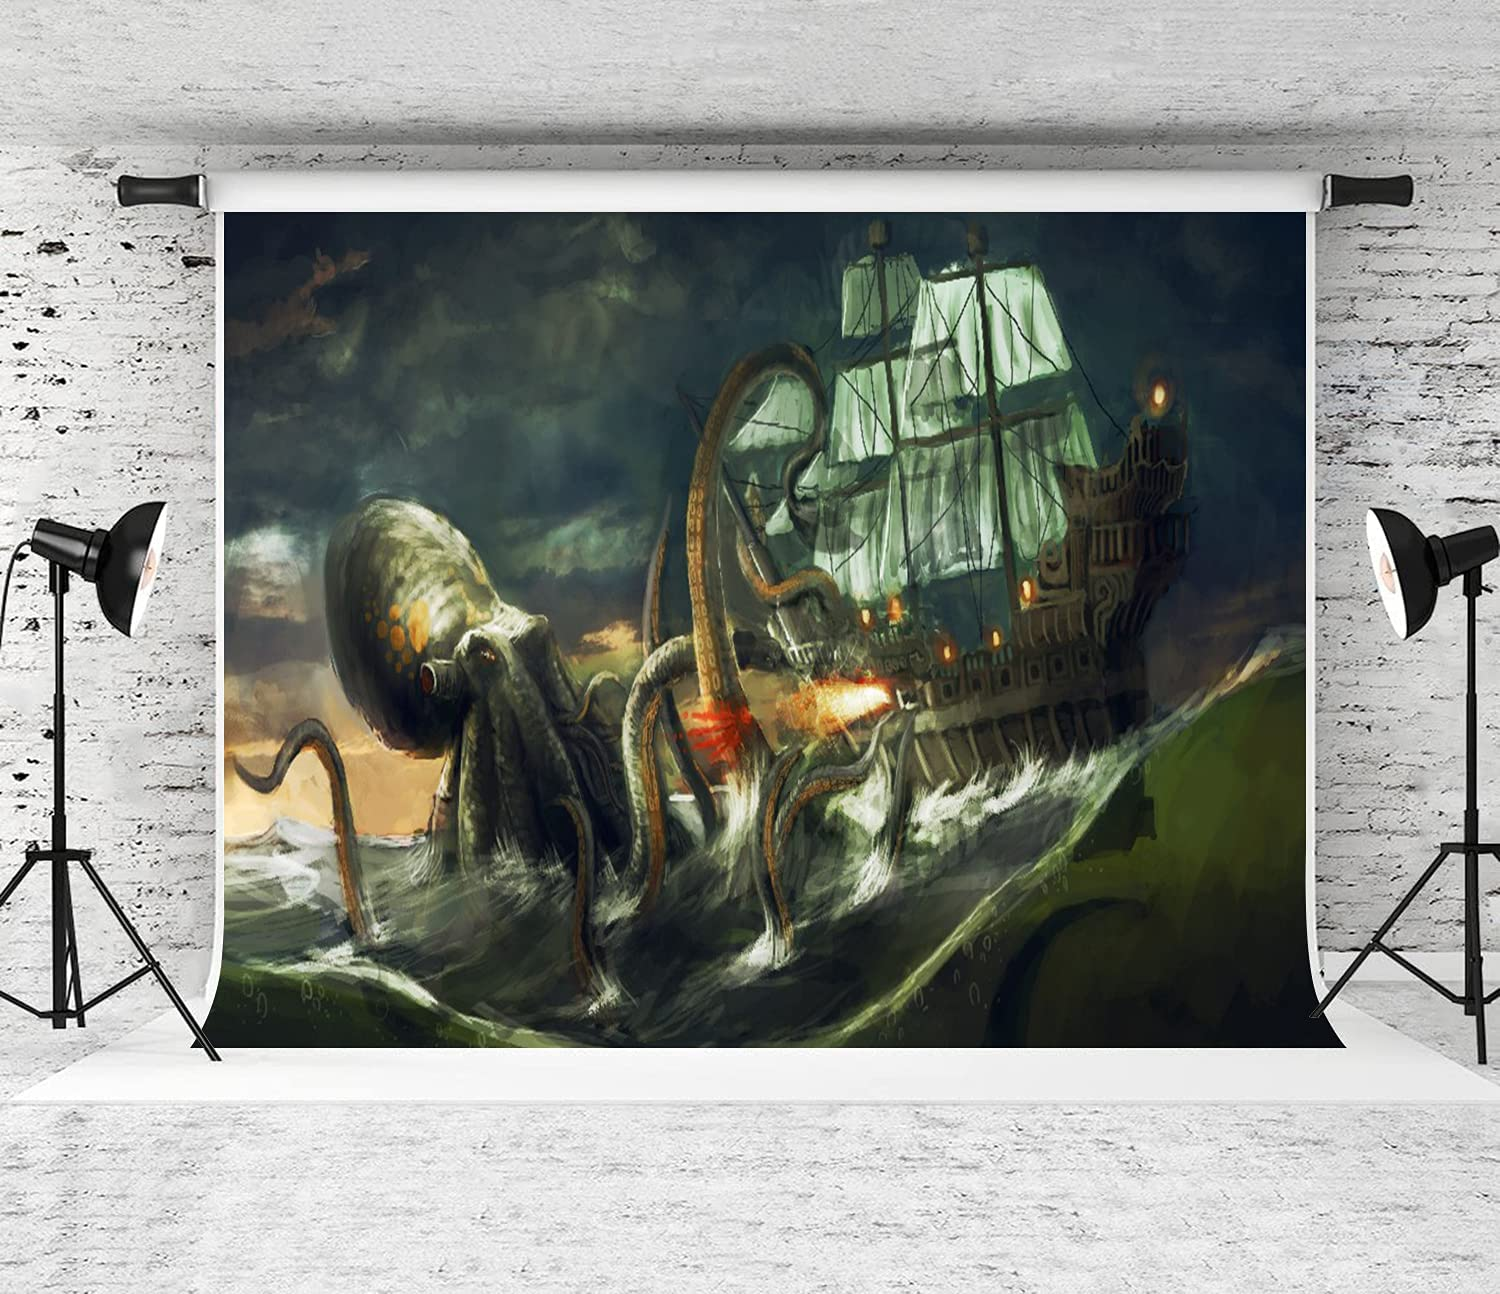 JISMUCI Spring new work Photography Background Max 63% OFF Sea Giant Octopus Attack Monster